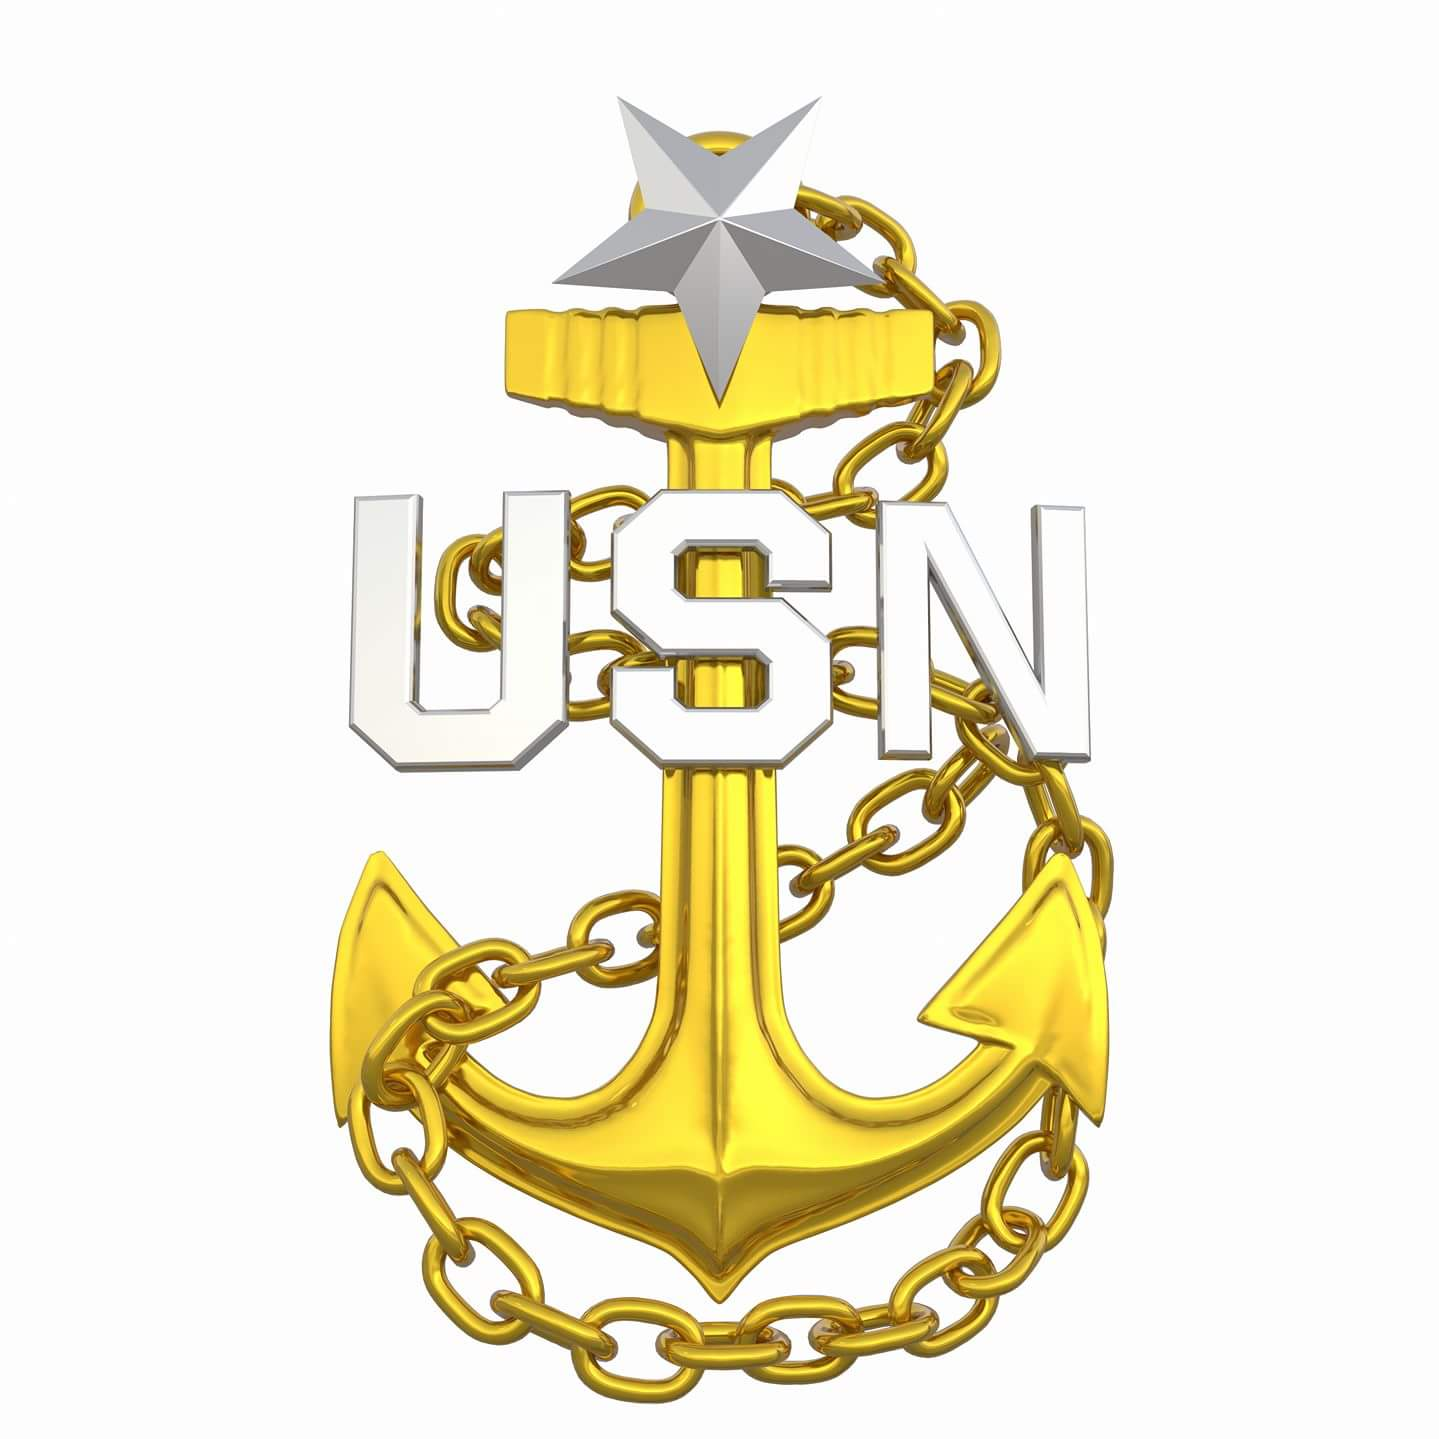 Navy clipart cpo, Navy cpo Transparent FREE for download on.